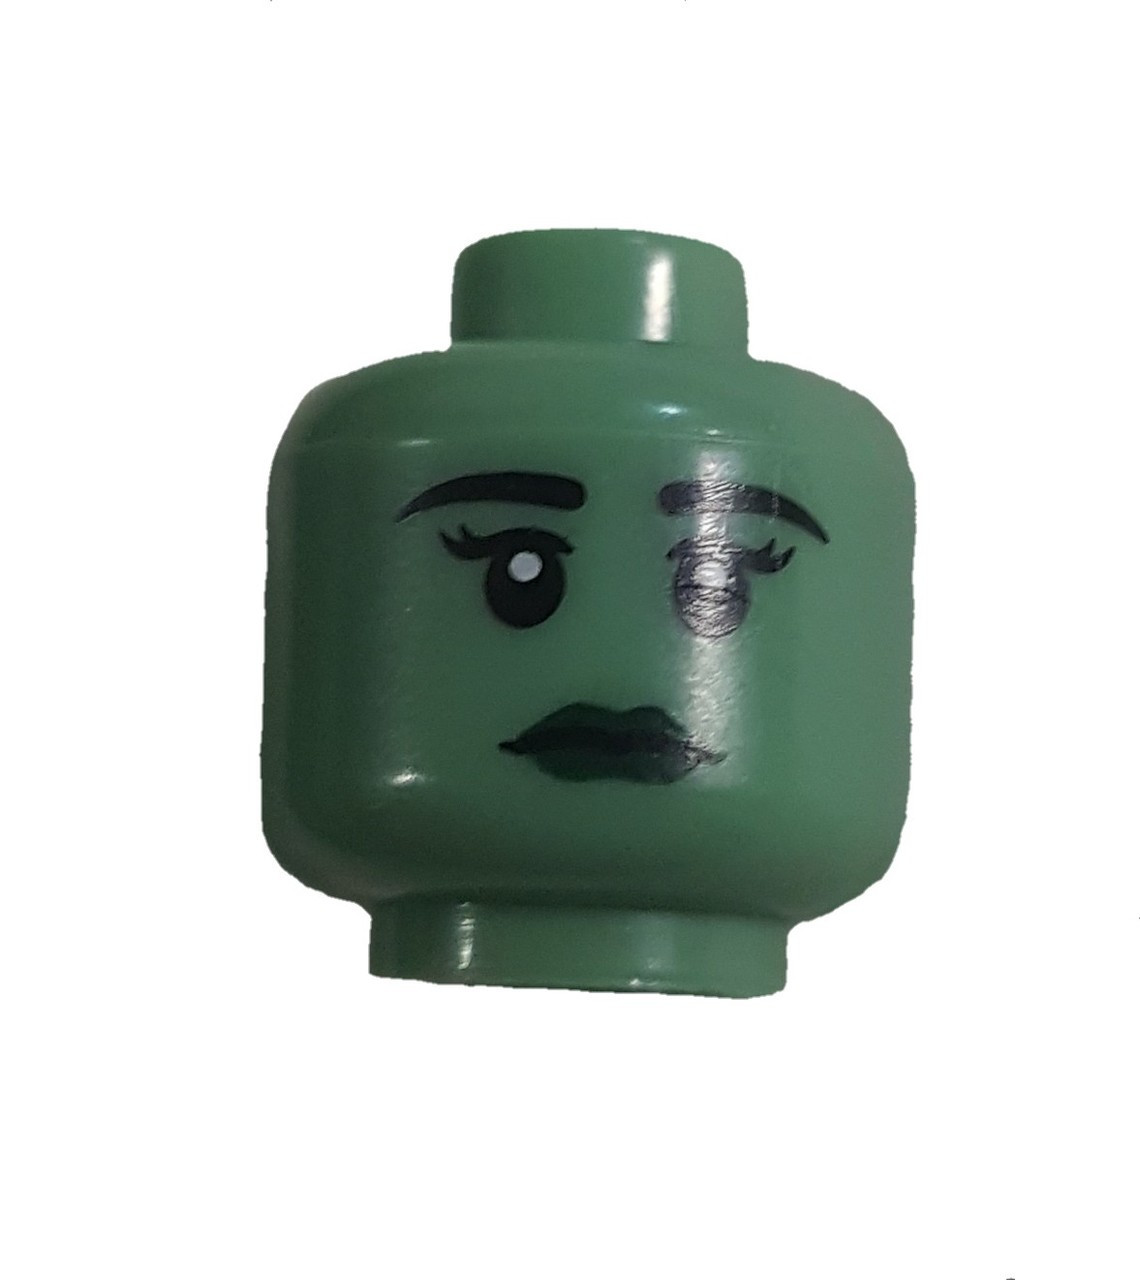 Lego 20 New Trans-Neon Green Minifigure Head Slime Face 1 Red Eye White Teeth